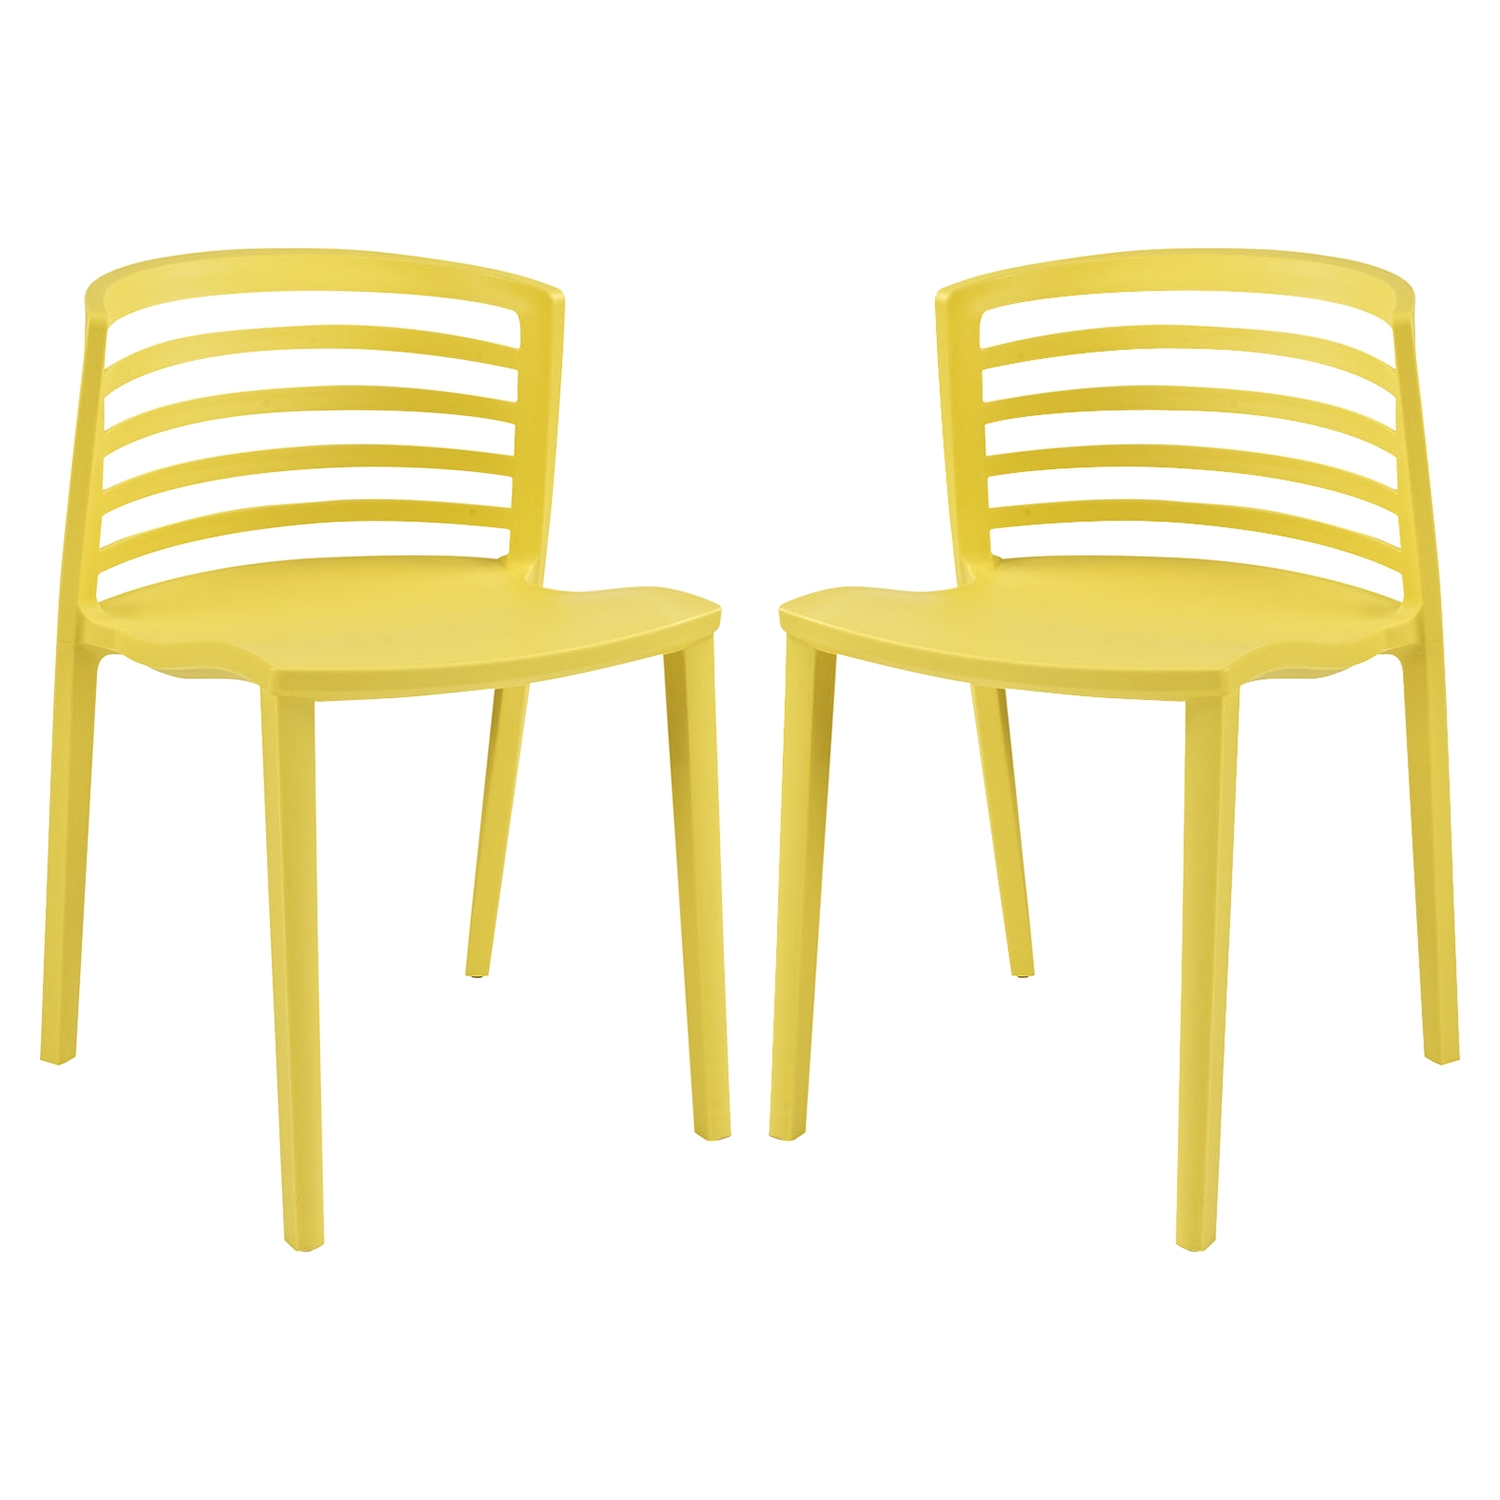 Curvy Dining Chairs (Set of 2) - EEI-935